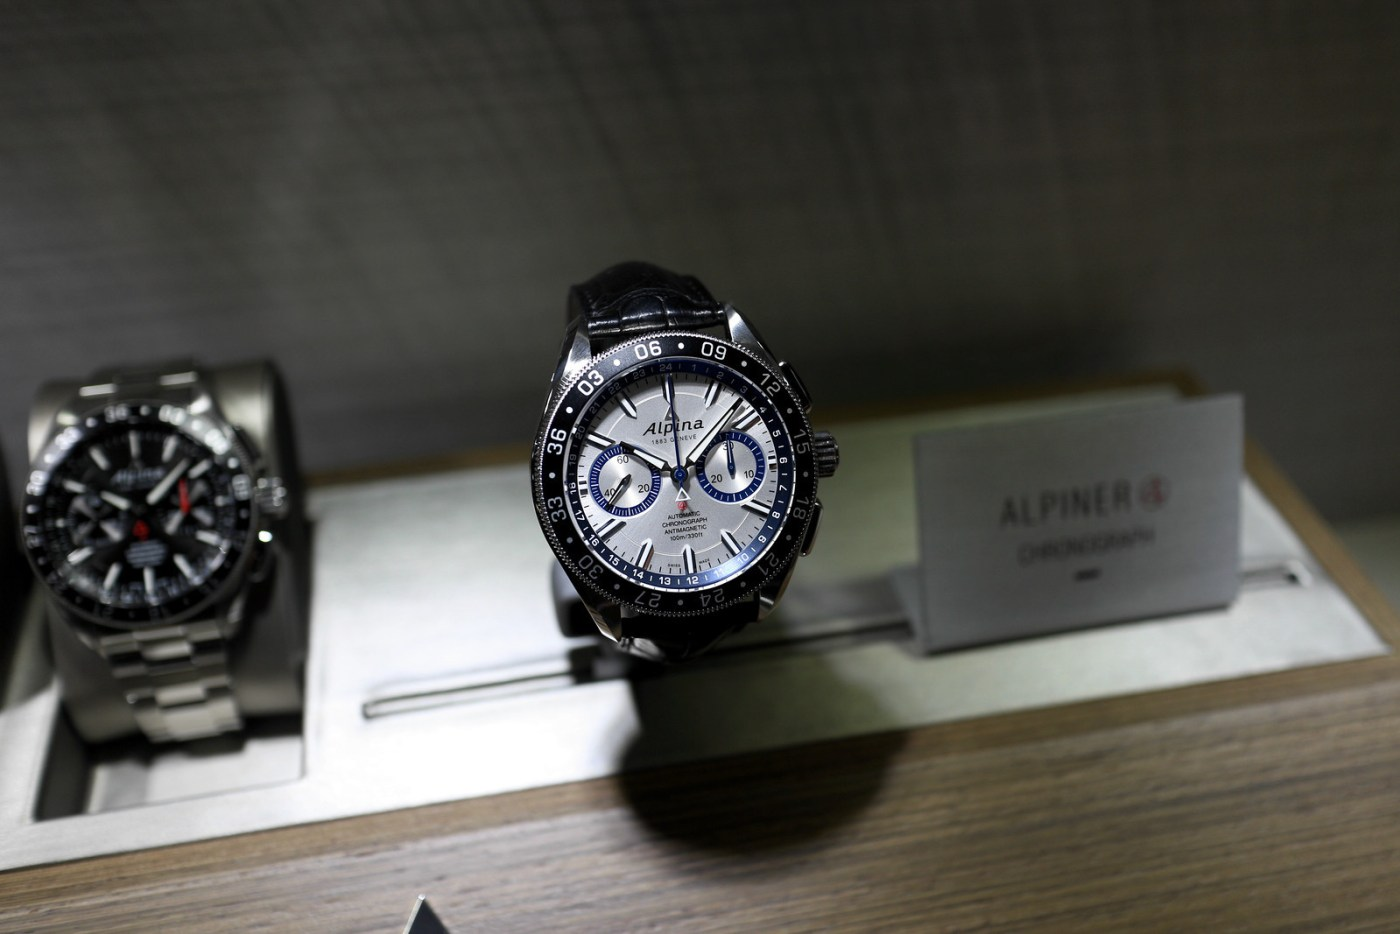 Highlights from Press Day at Baselworld 2014